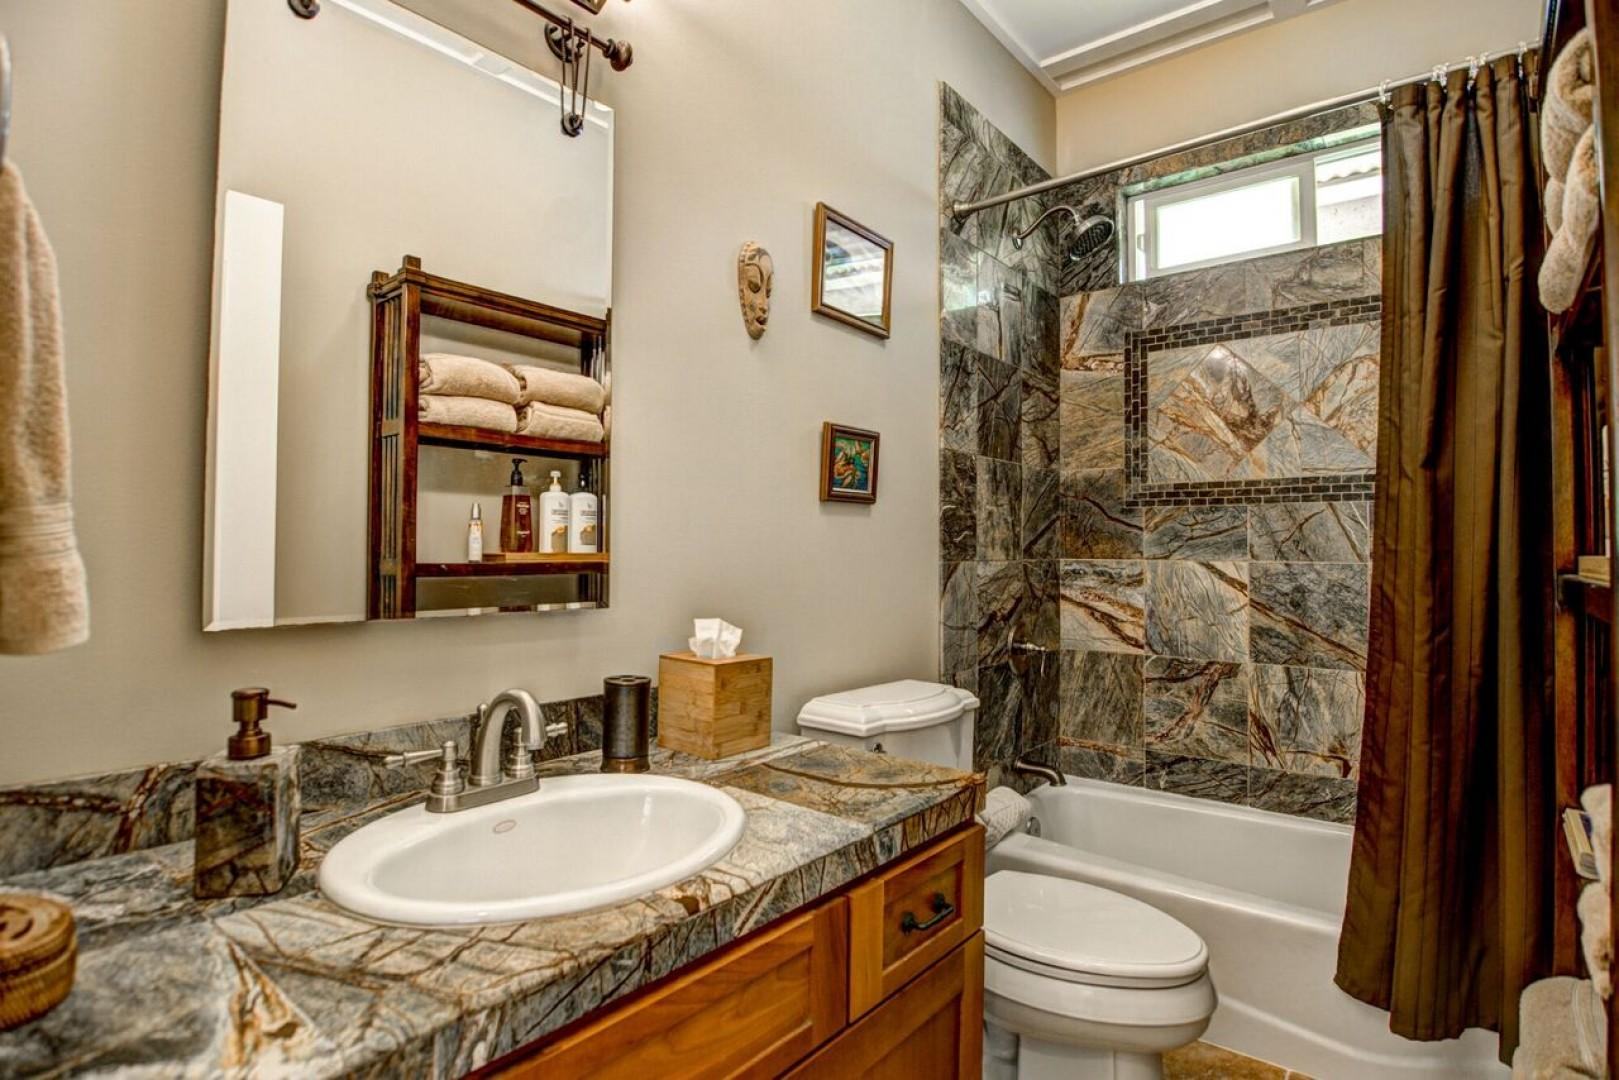 Bathroom 3 is shared with two bedrooms and has a full tub with shower and elegant marble tile